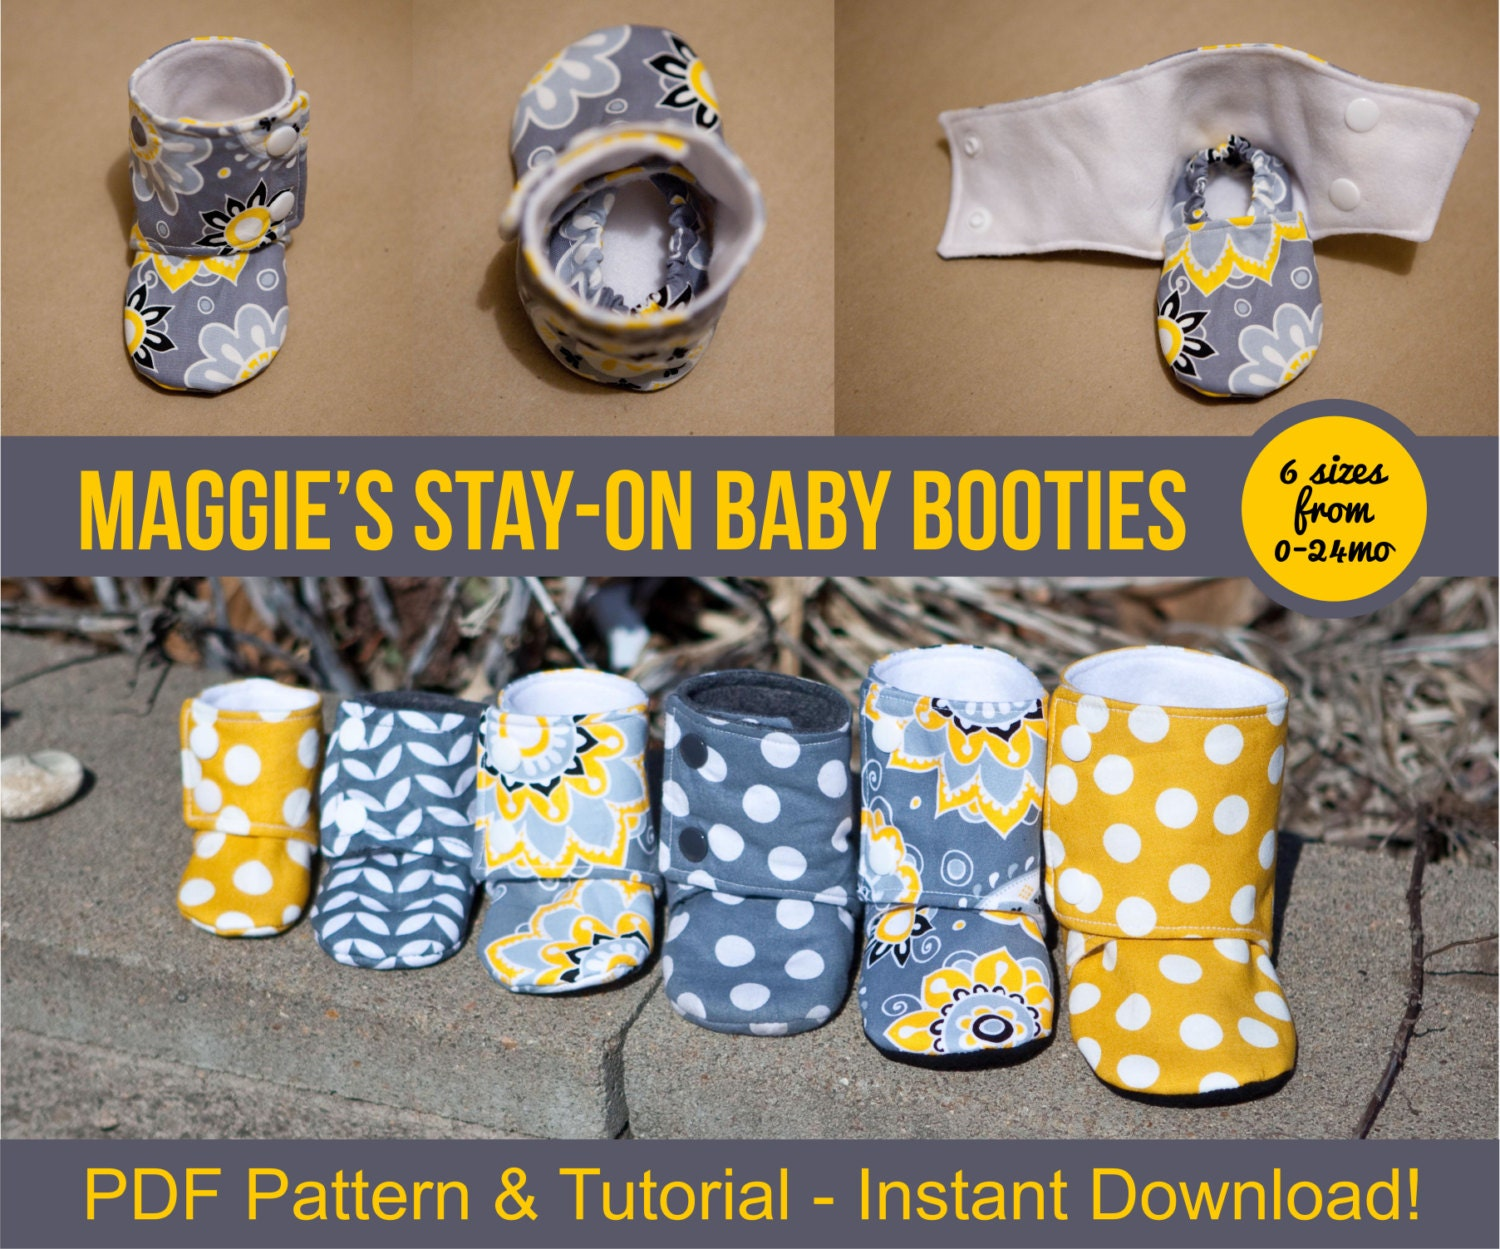 Maggies stay on baby booties sewing tutorial printable zoom jeuxipadfo Choice Image